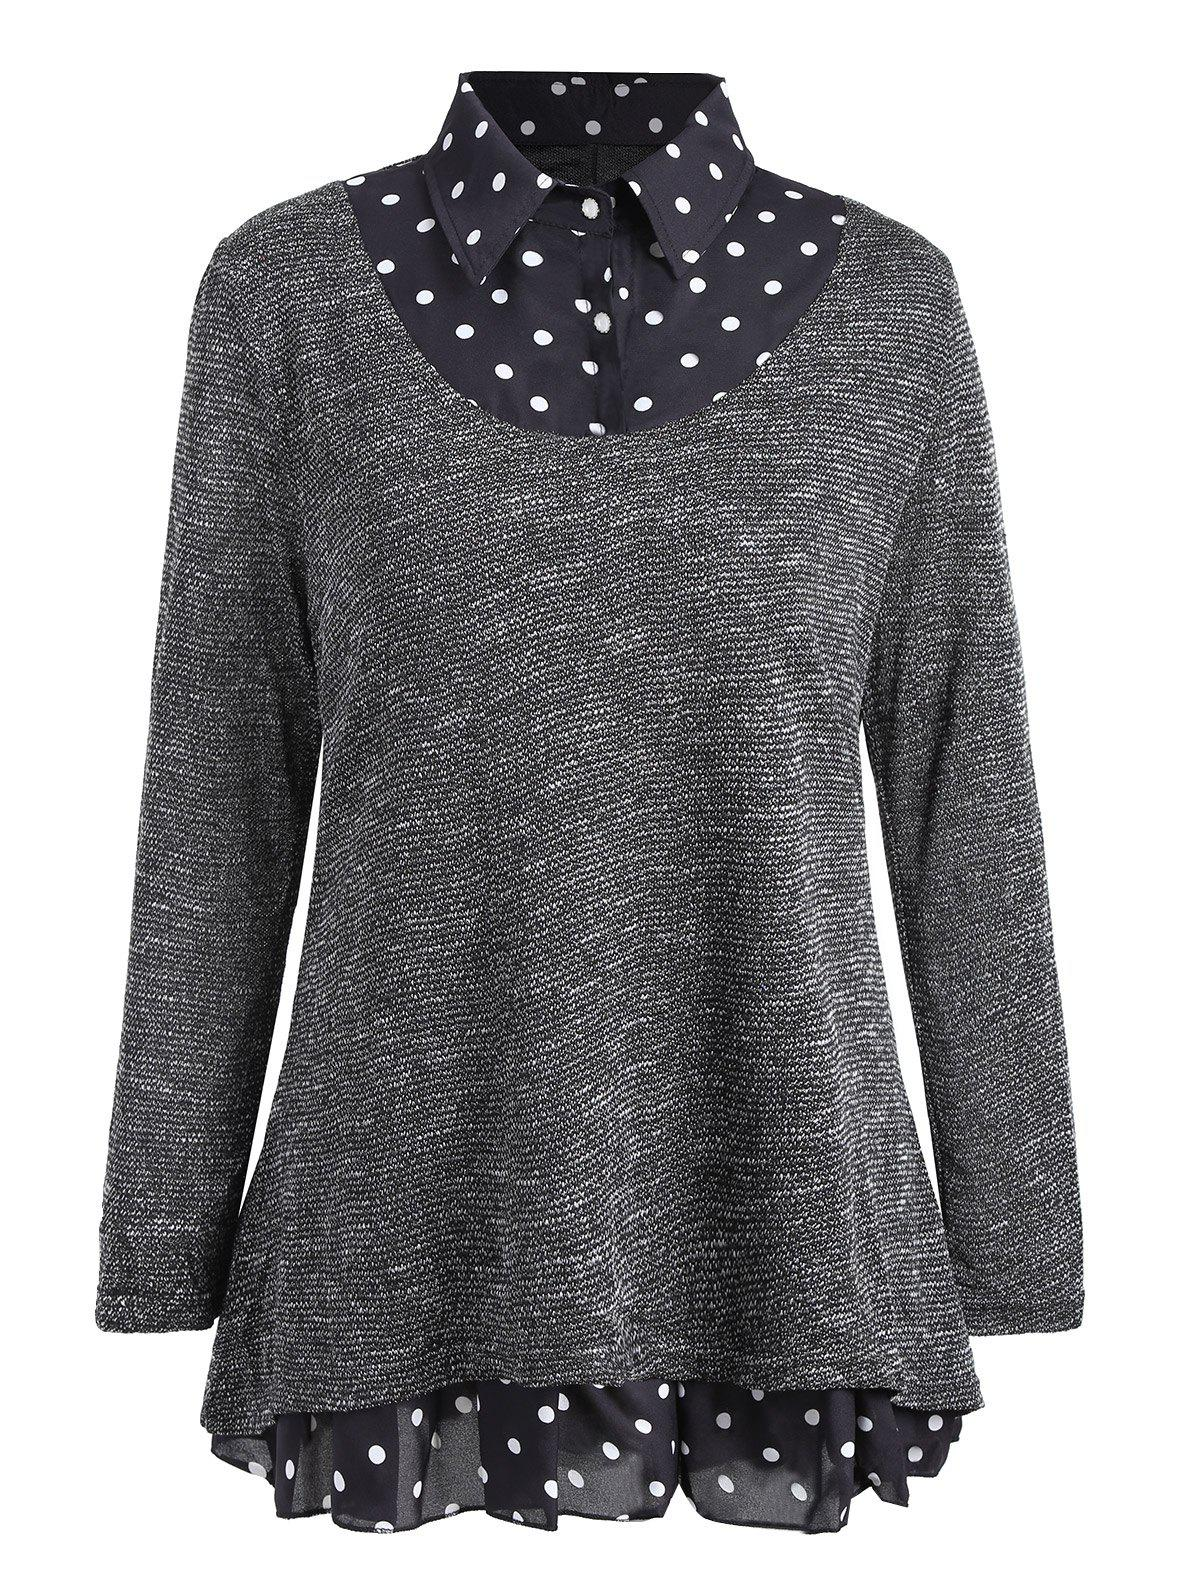 Chic Plus Size Overlay Polka Dot Knit Top